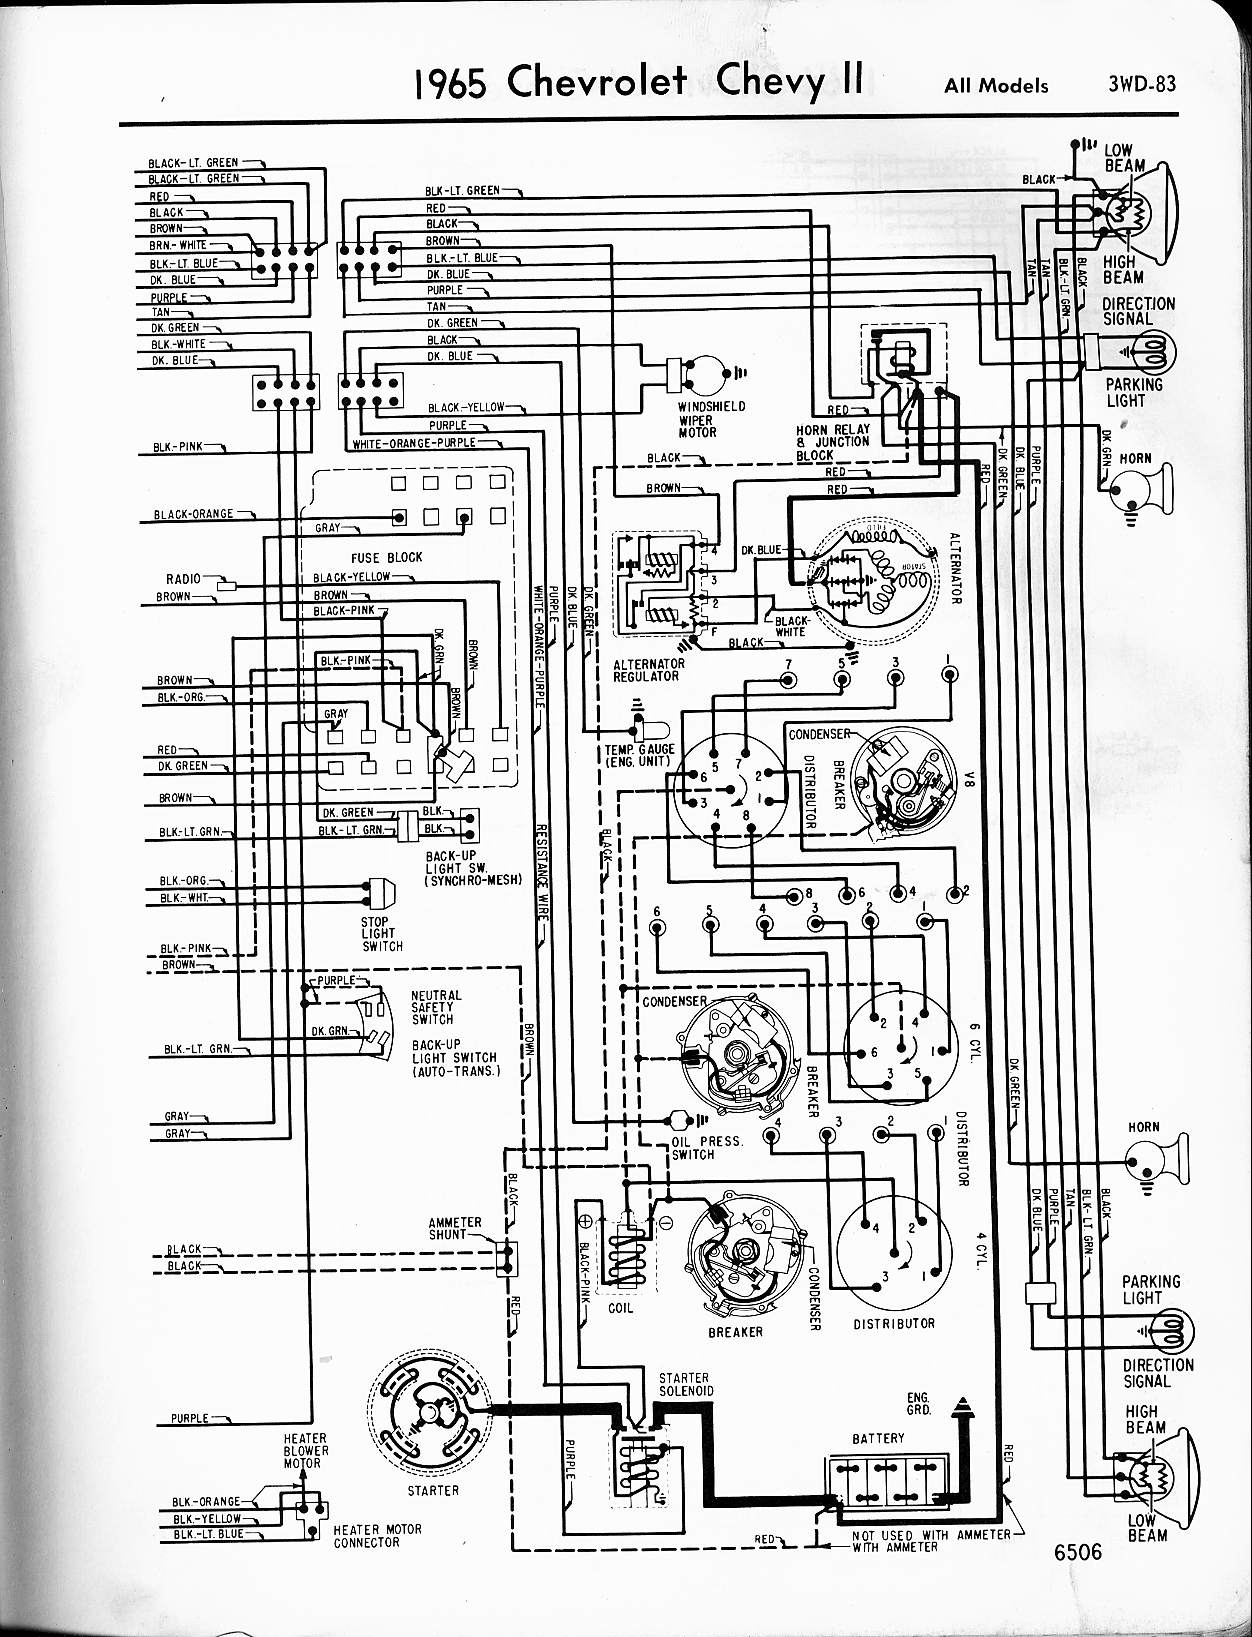 64 Impala Headlight Wiring Diagram Library F350 Schematic Schematics Rh Enr Green Com 1964 Chevy Fuse